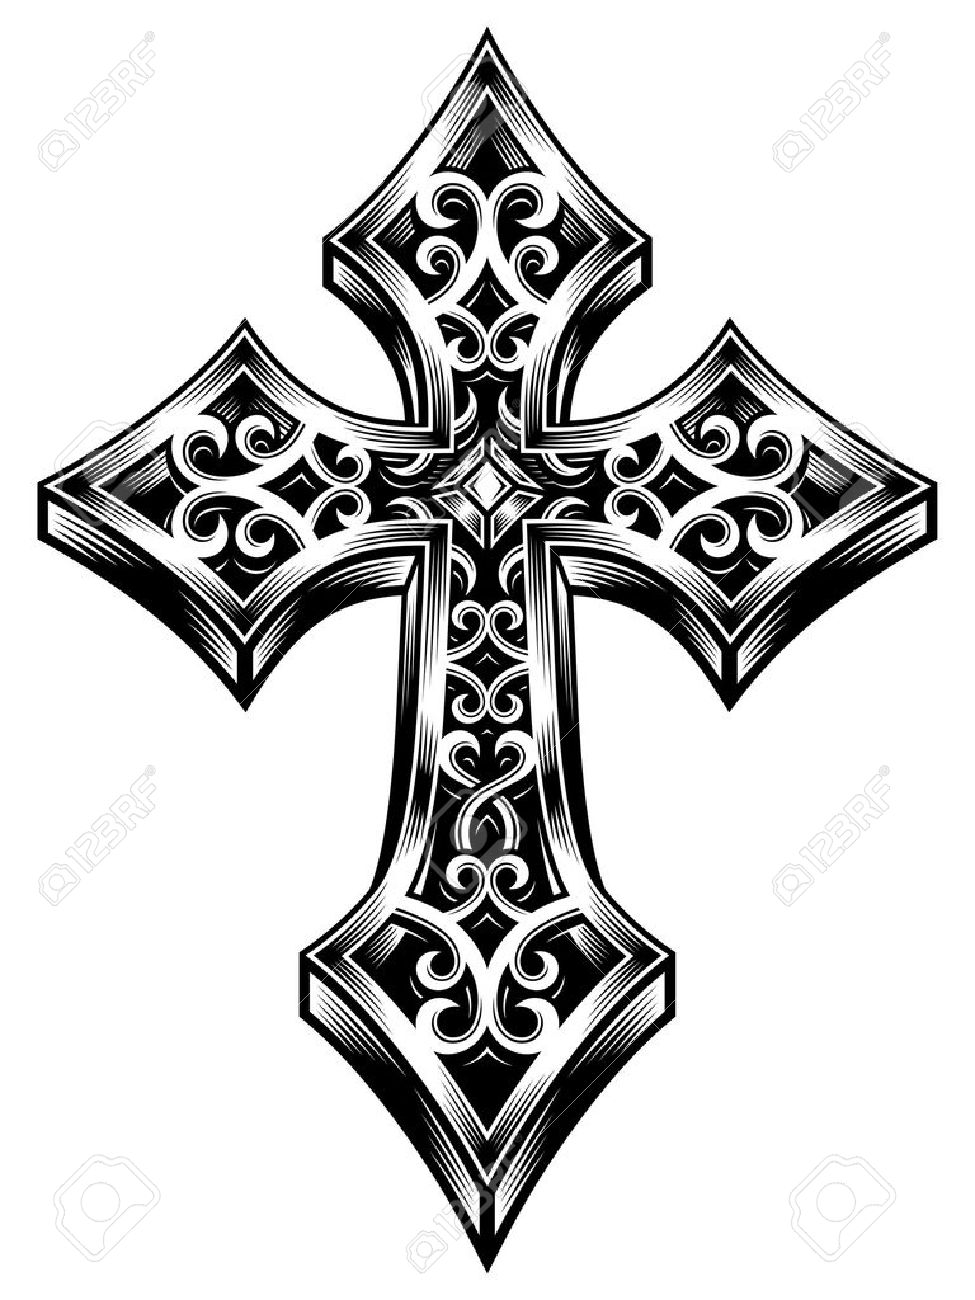 975x1300 Ornate Celtic Cross Vector Royalty Free Cliparts, Vectors,